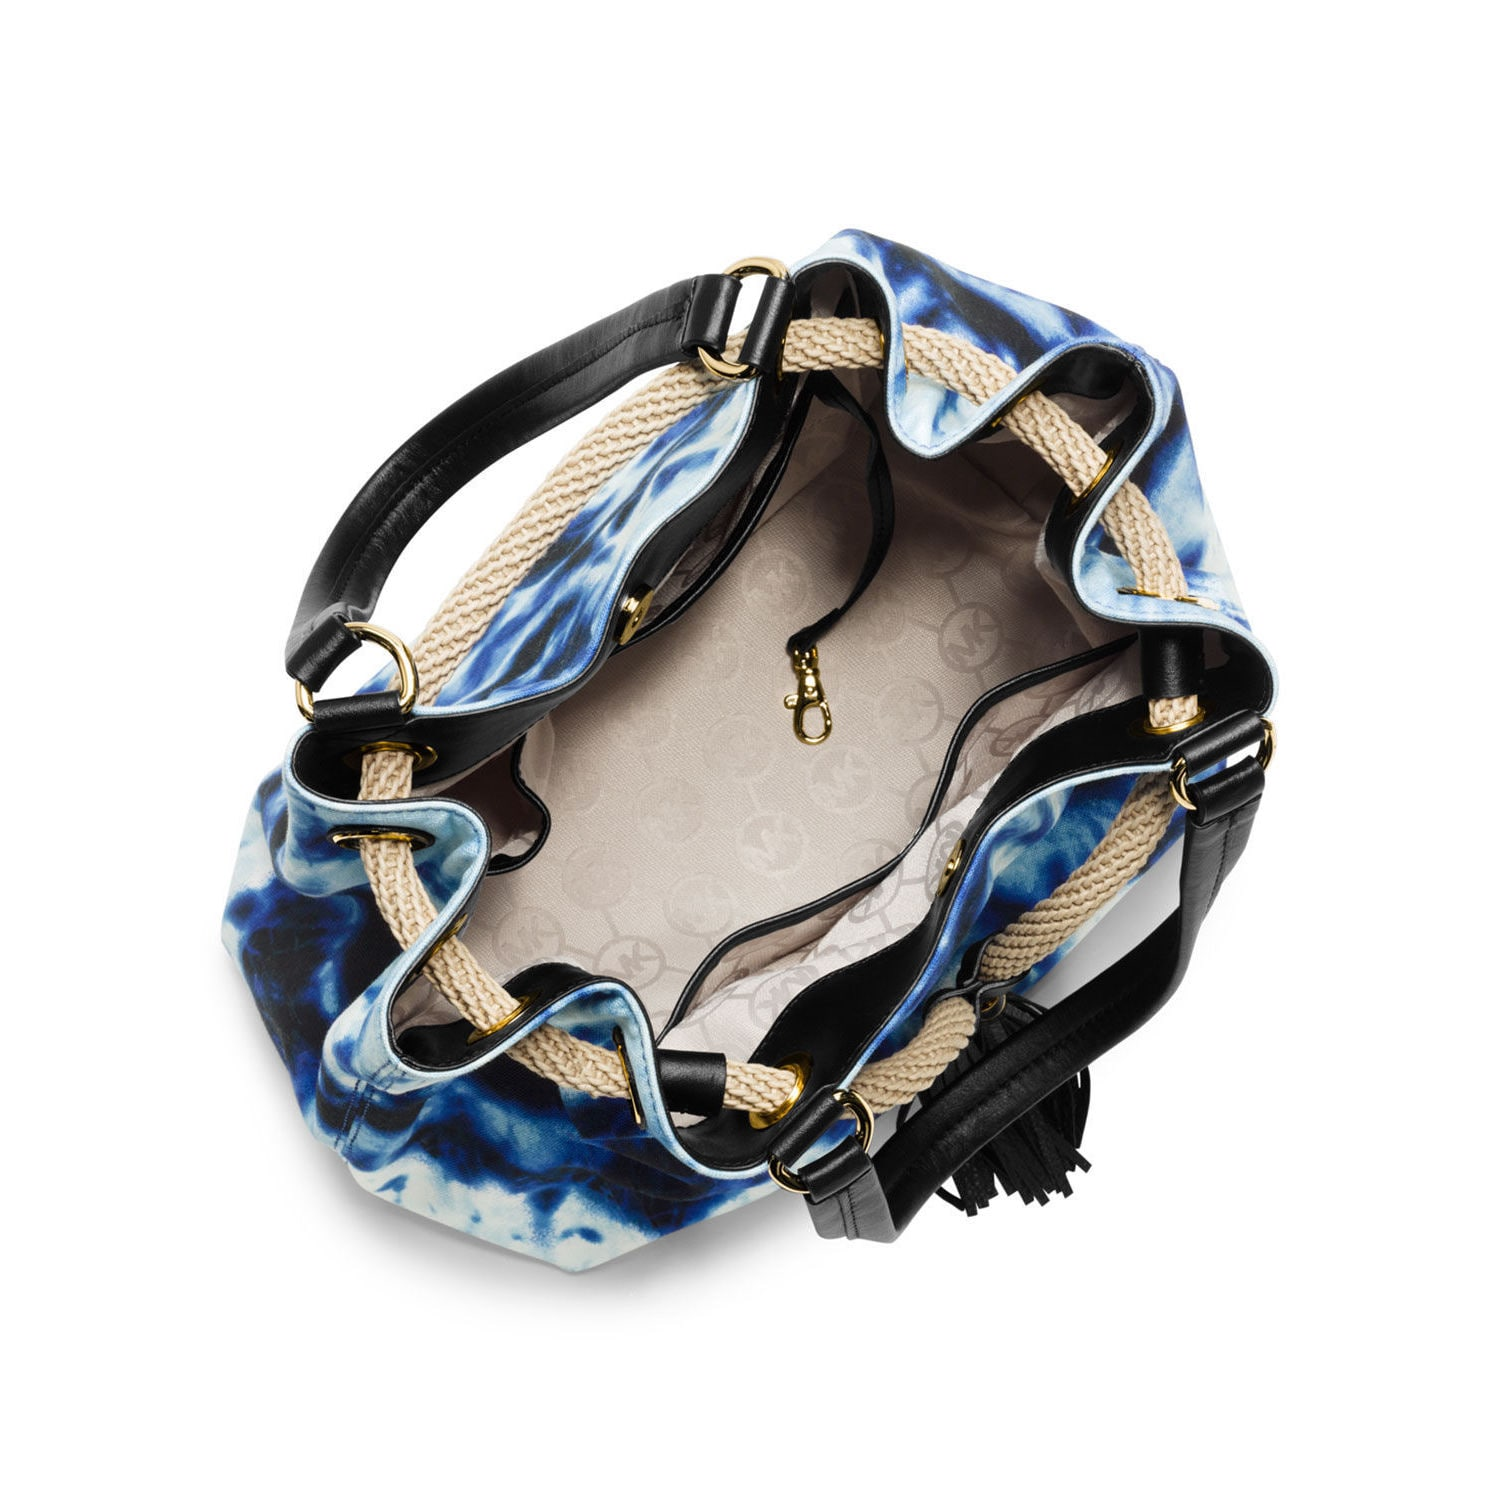 12df210703c7 Shop MICHAEL Michael Kors Marina Large Tie-dye Gathered Tote - Free  Shipping Today - Overstock - 10184618